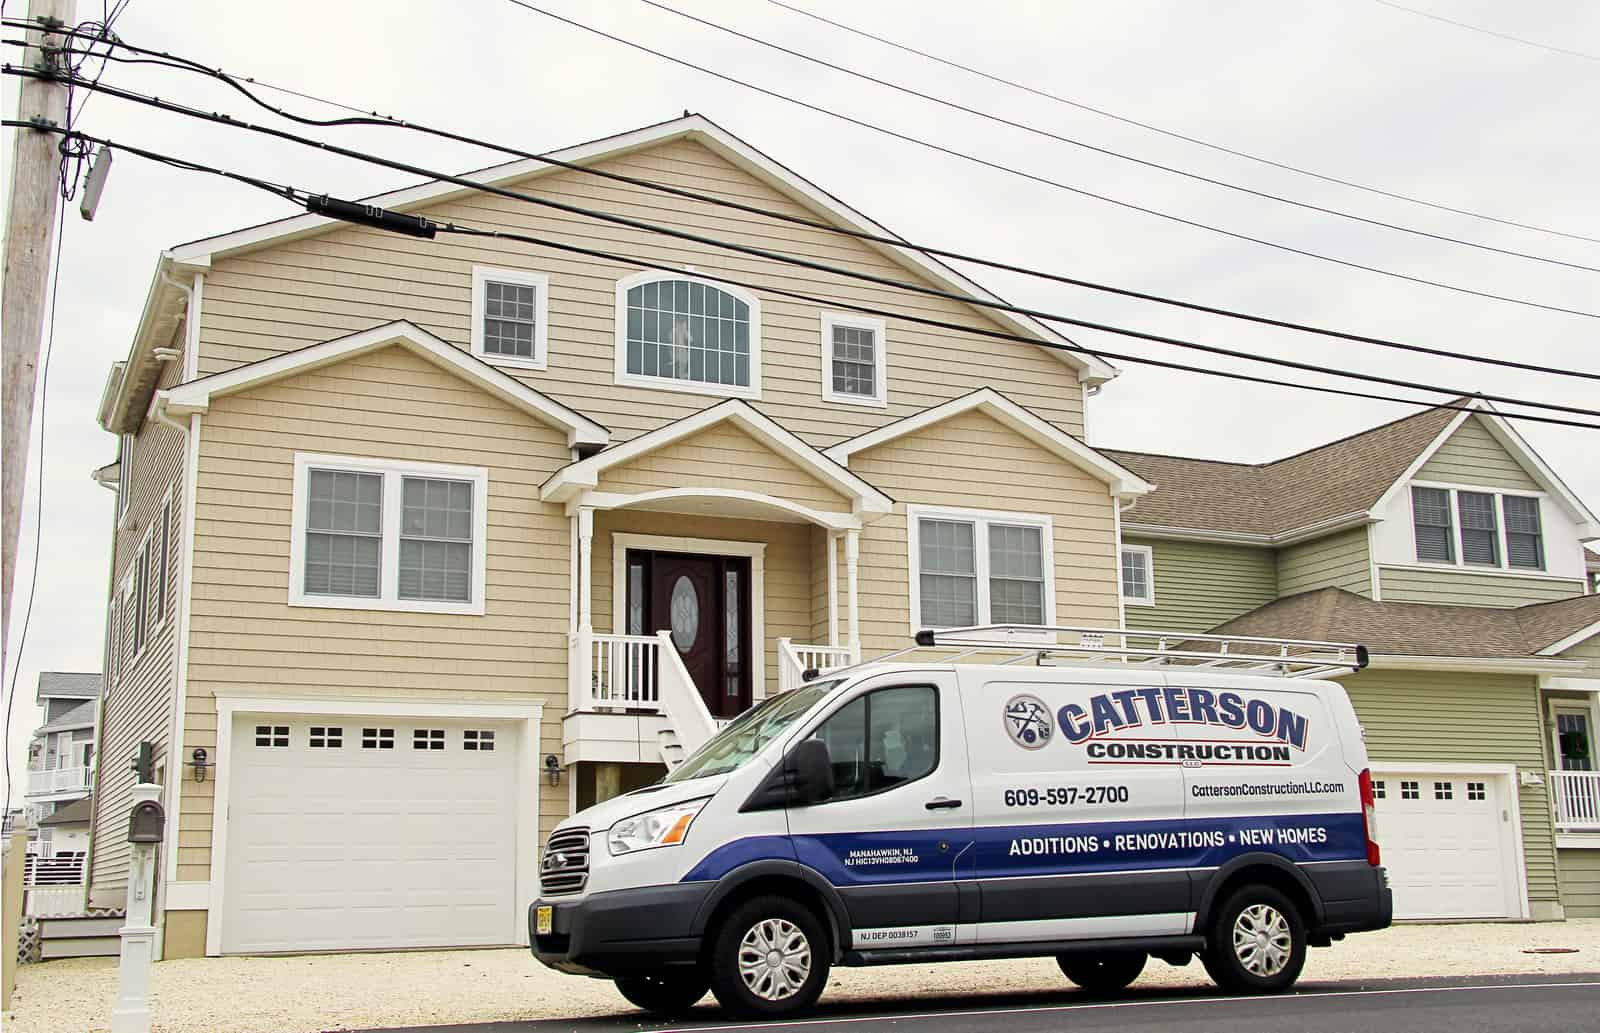 Contact Catterson Construction